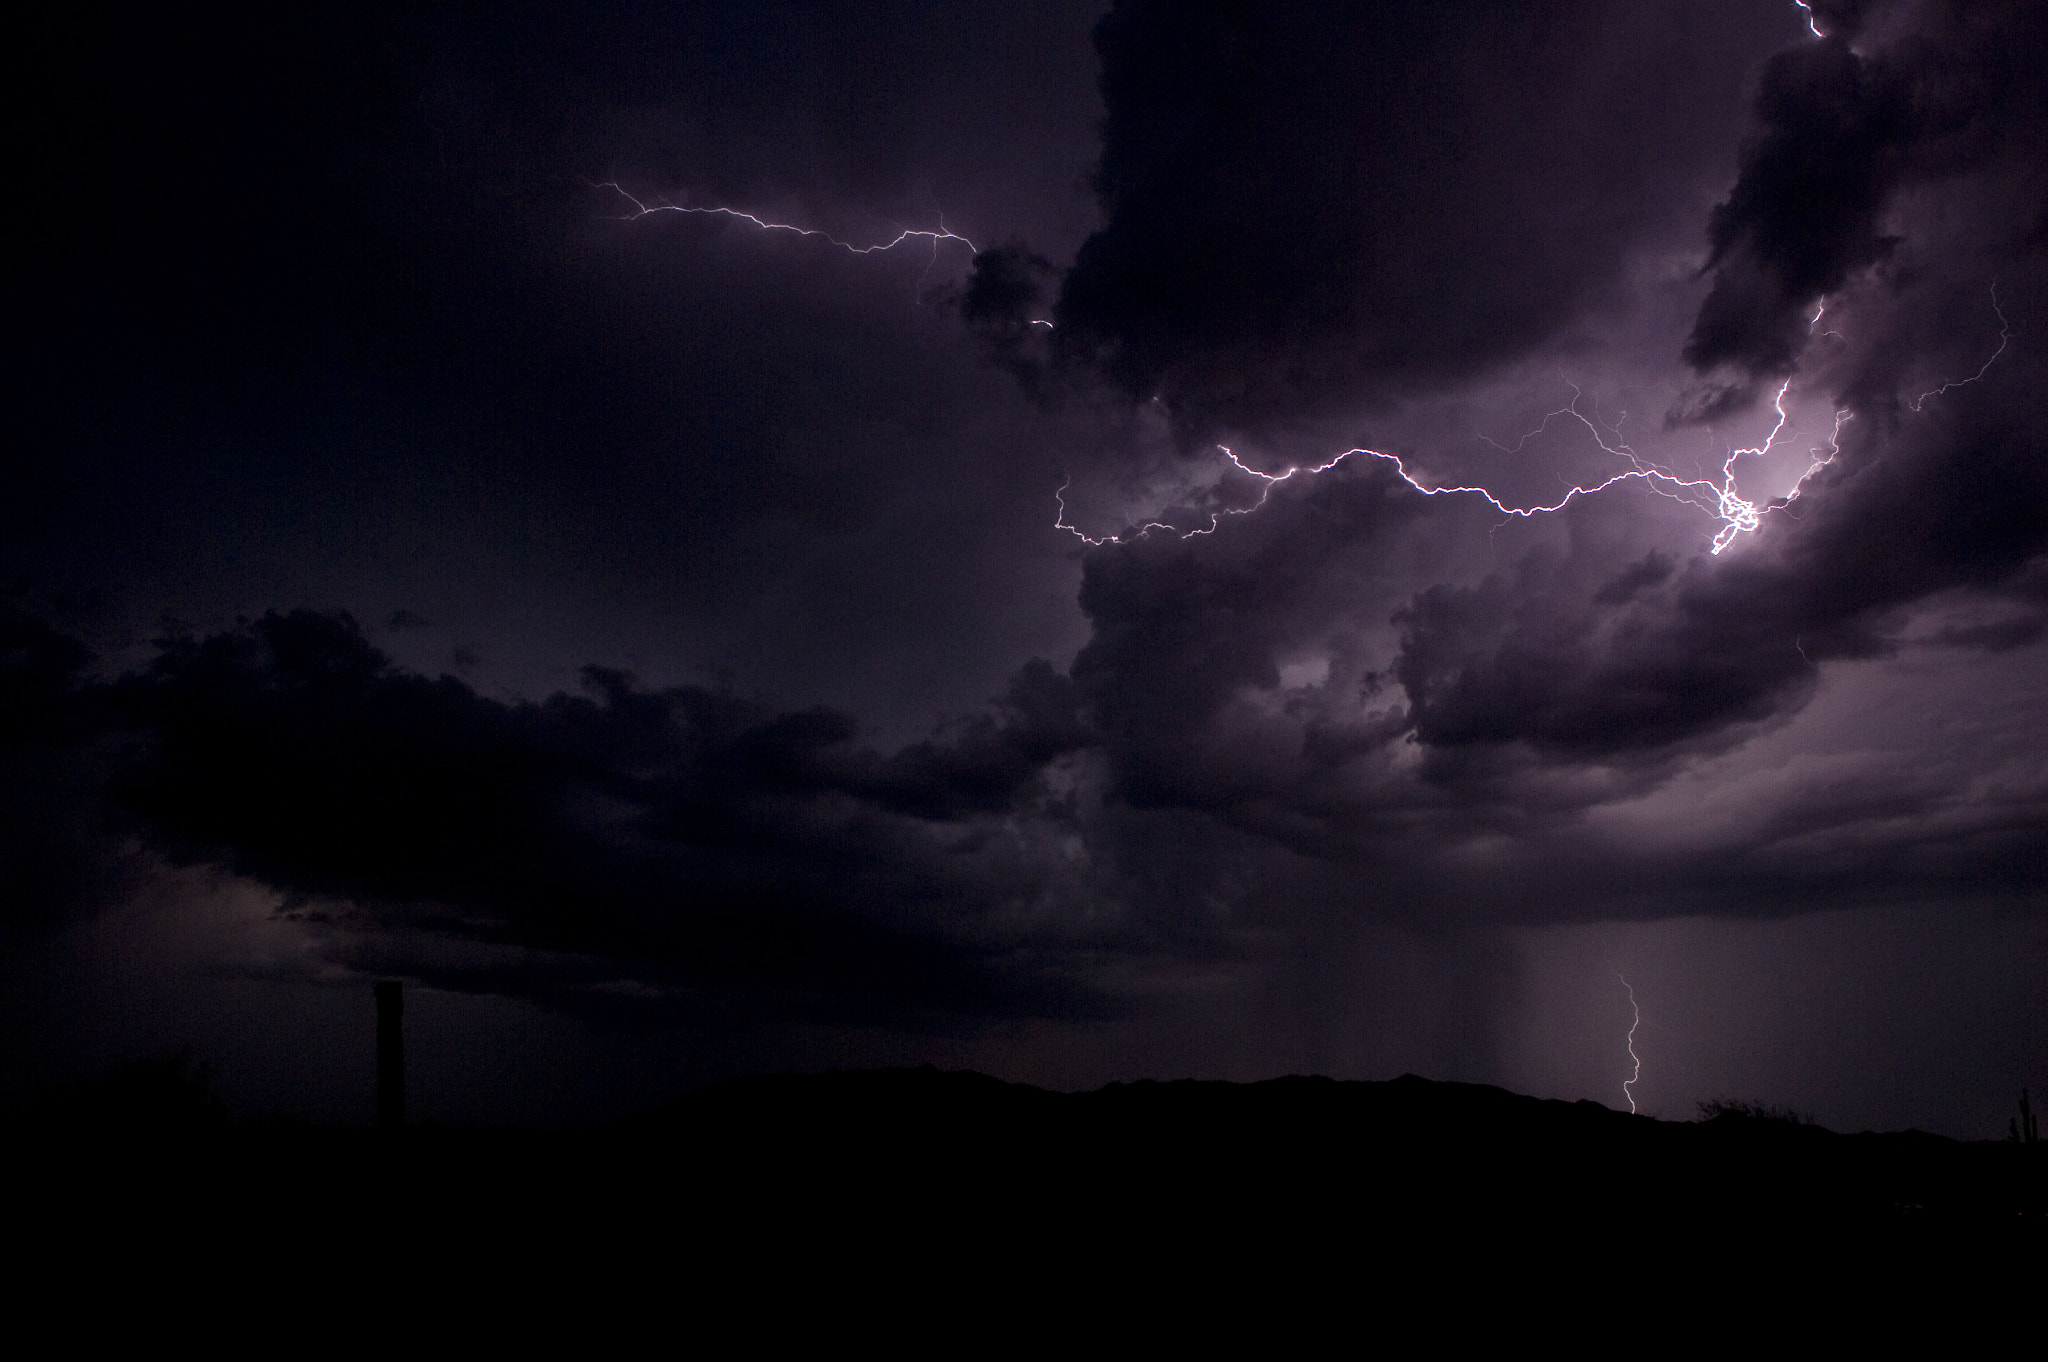 Photograph Arizona Summer Lightning Storm by Eugene Cupps on 500px